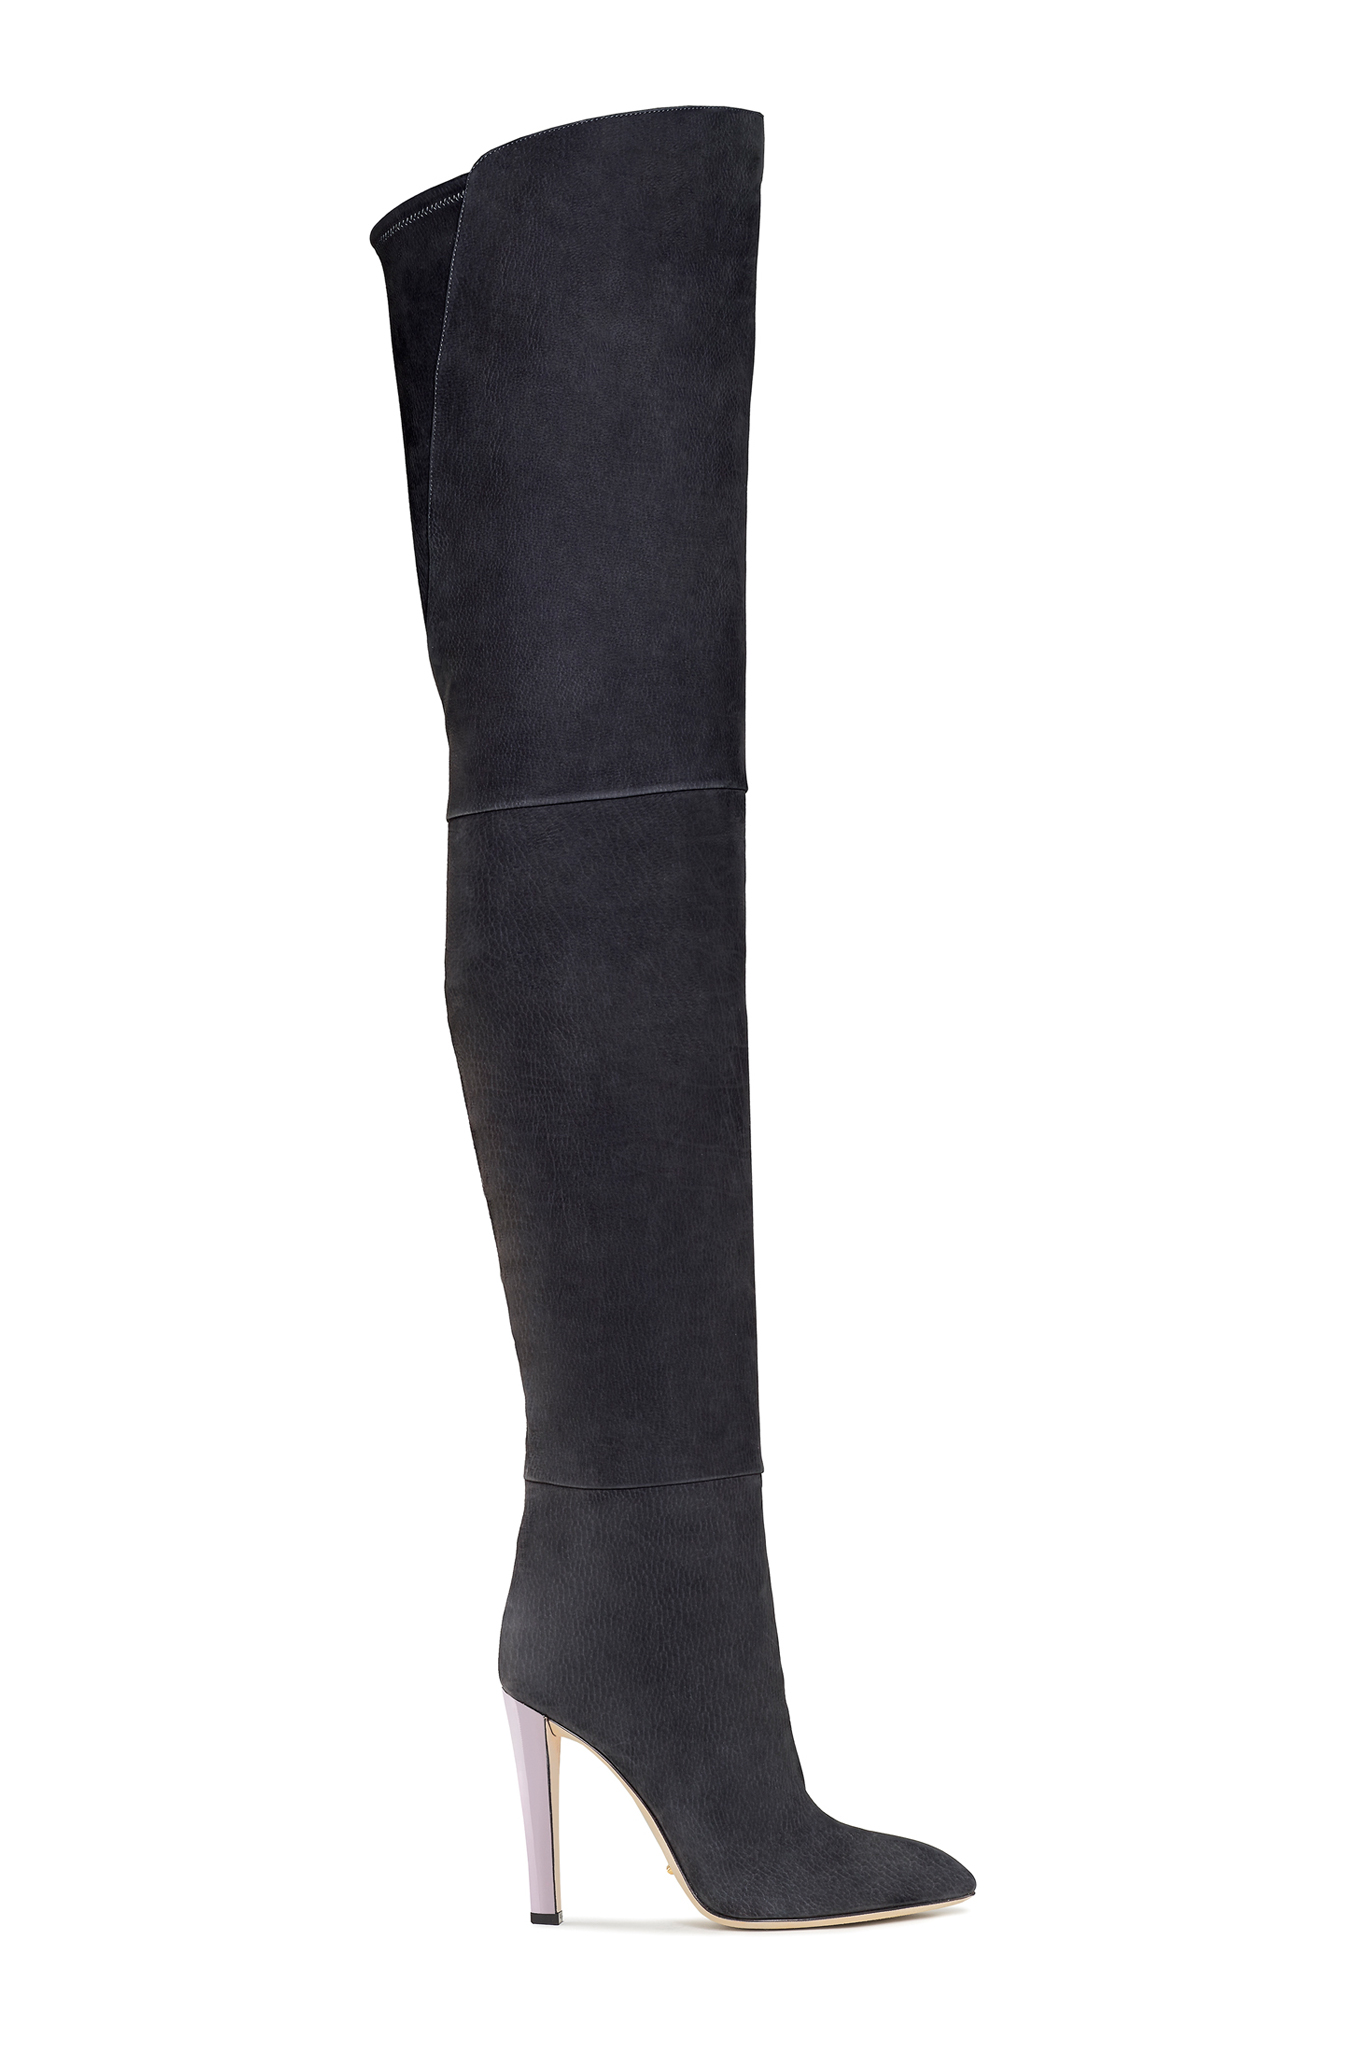 06-08-accessories-trends-fall-2015-thigh-high-boots.JPG